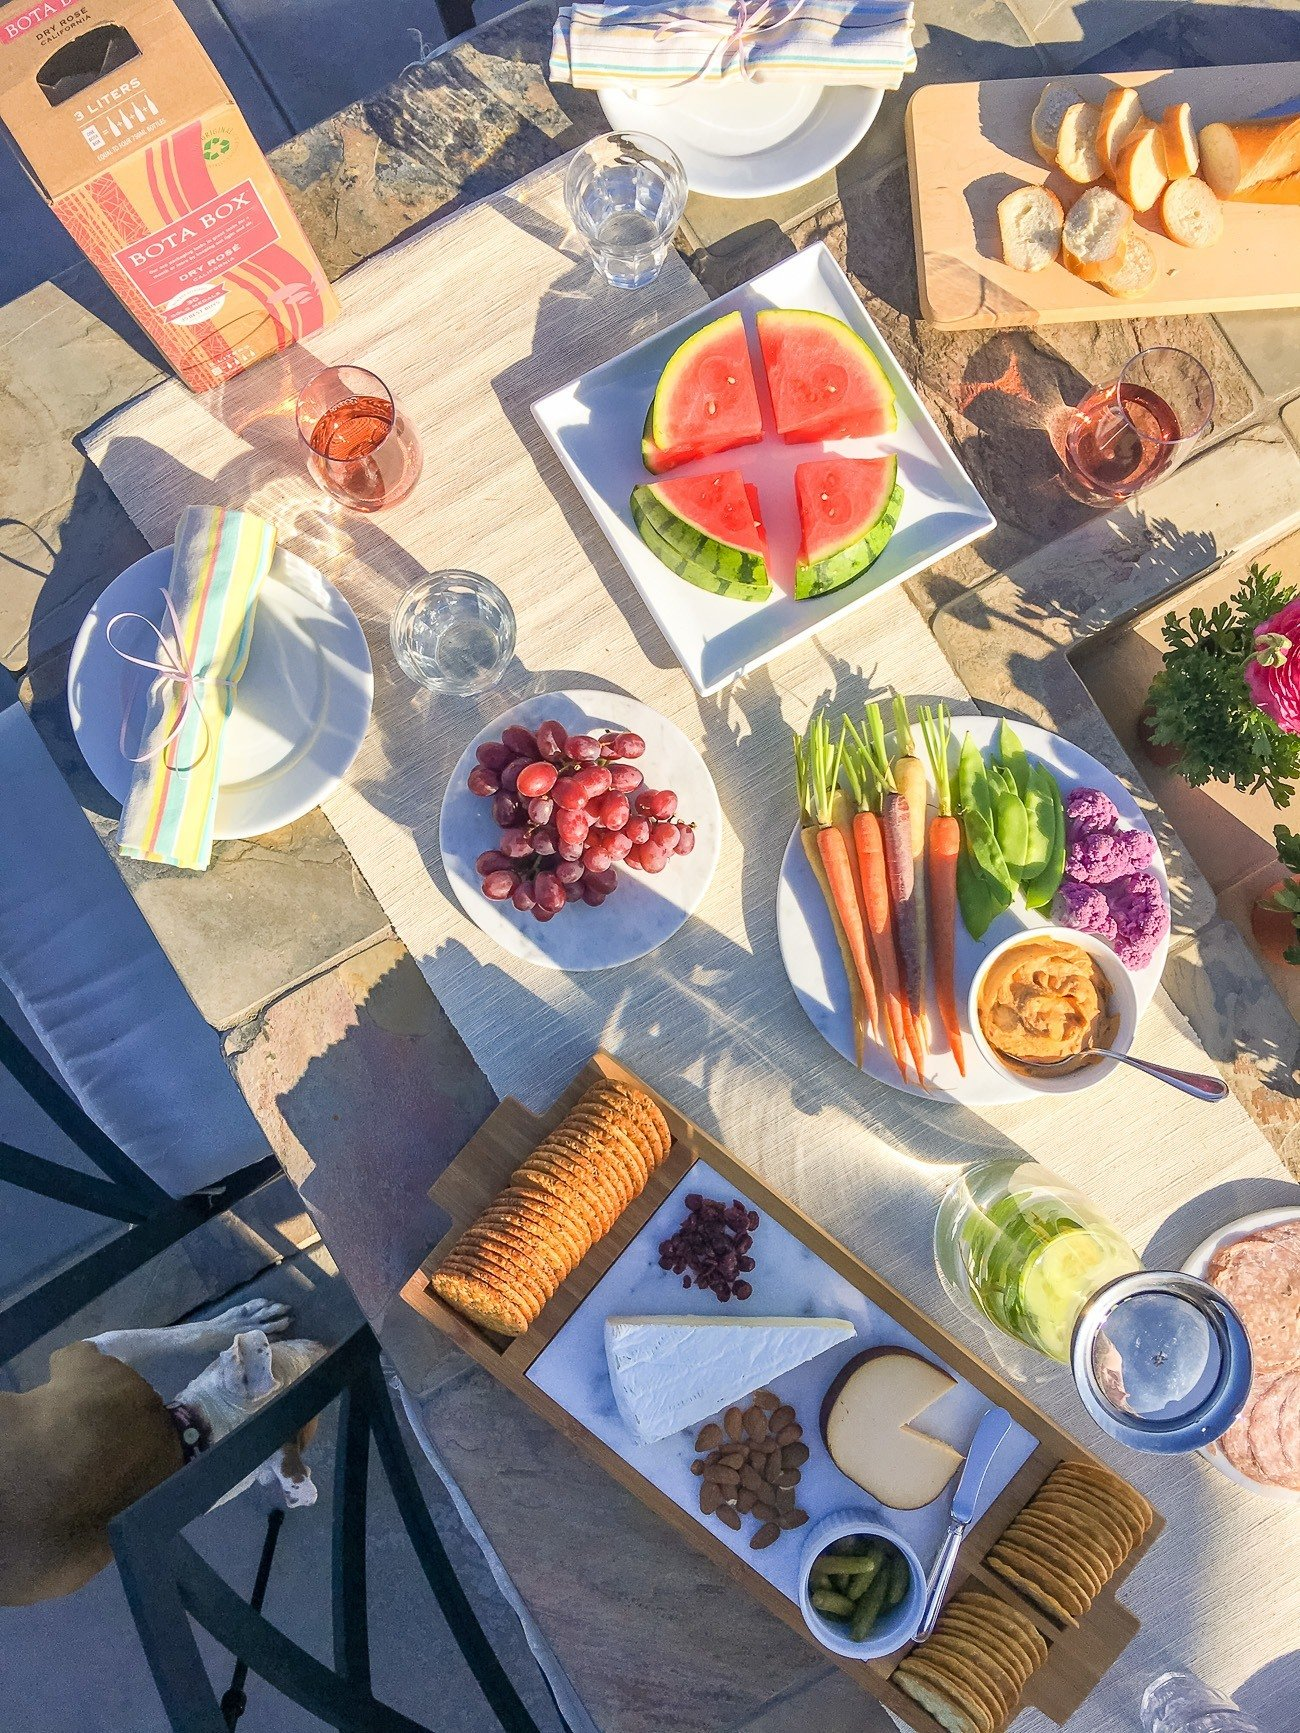 Throw an easy outdoor happy hour that's eco-friendly with these tips (including the wine).